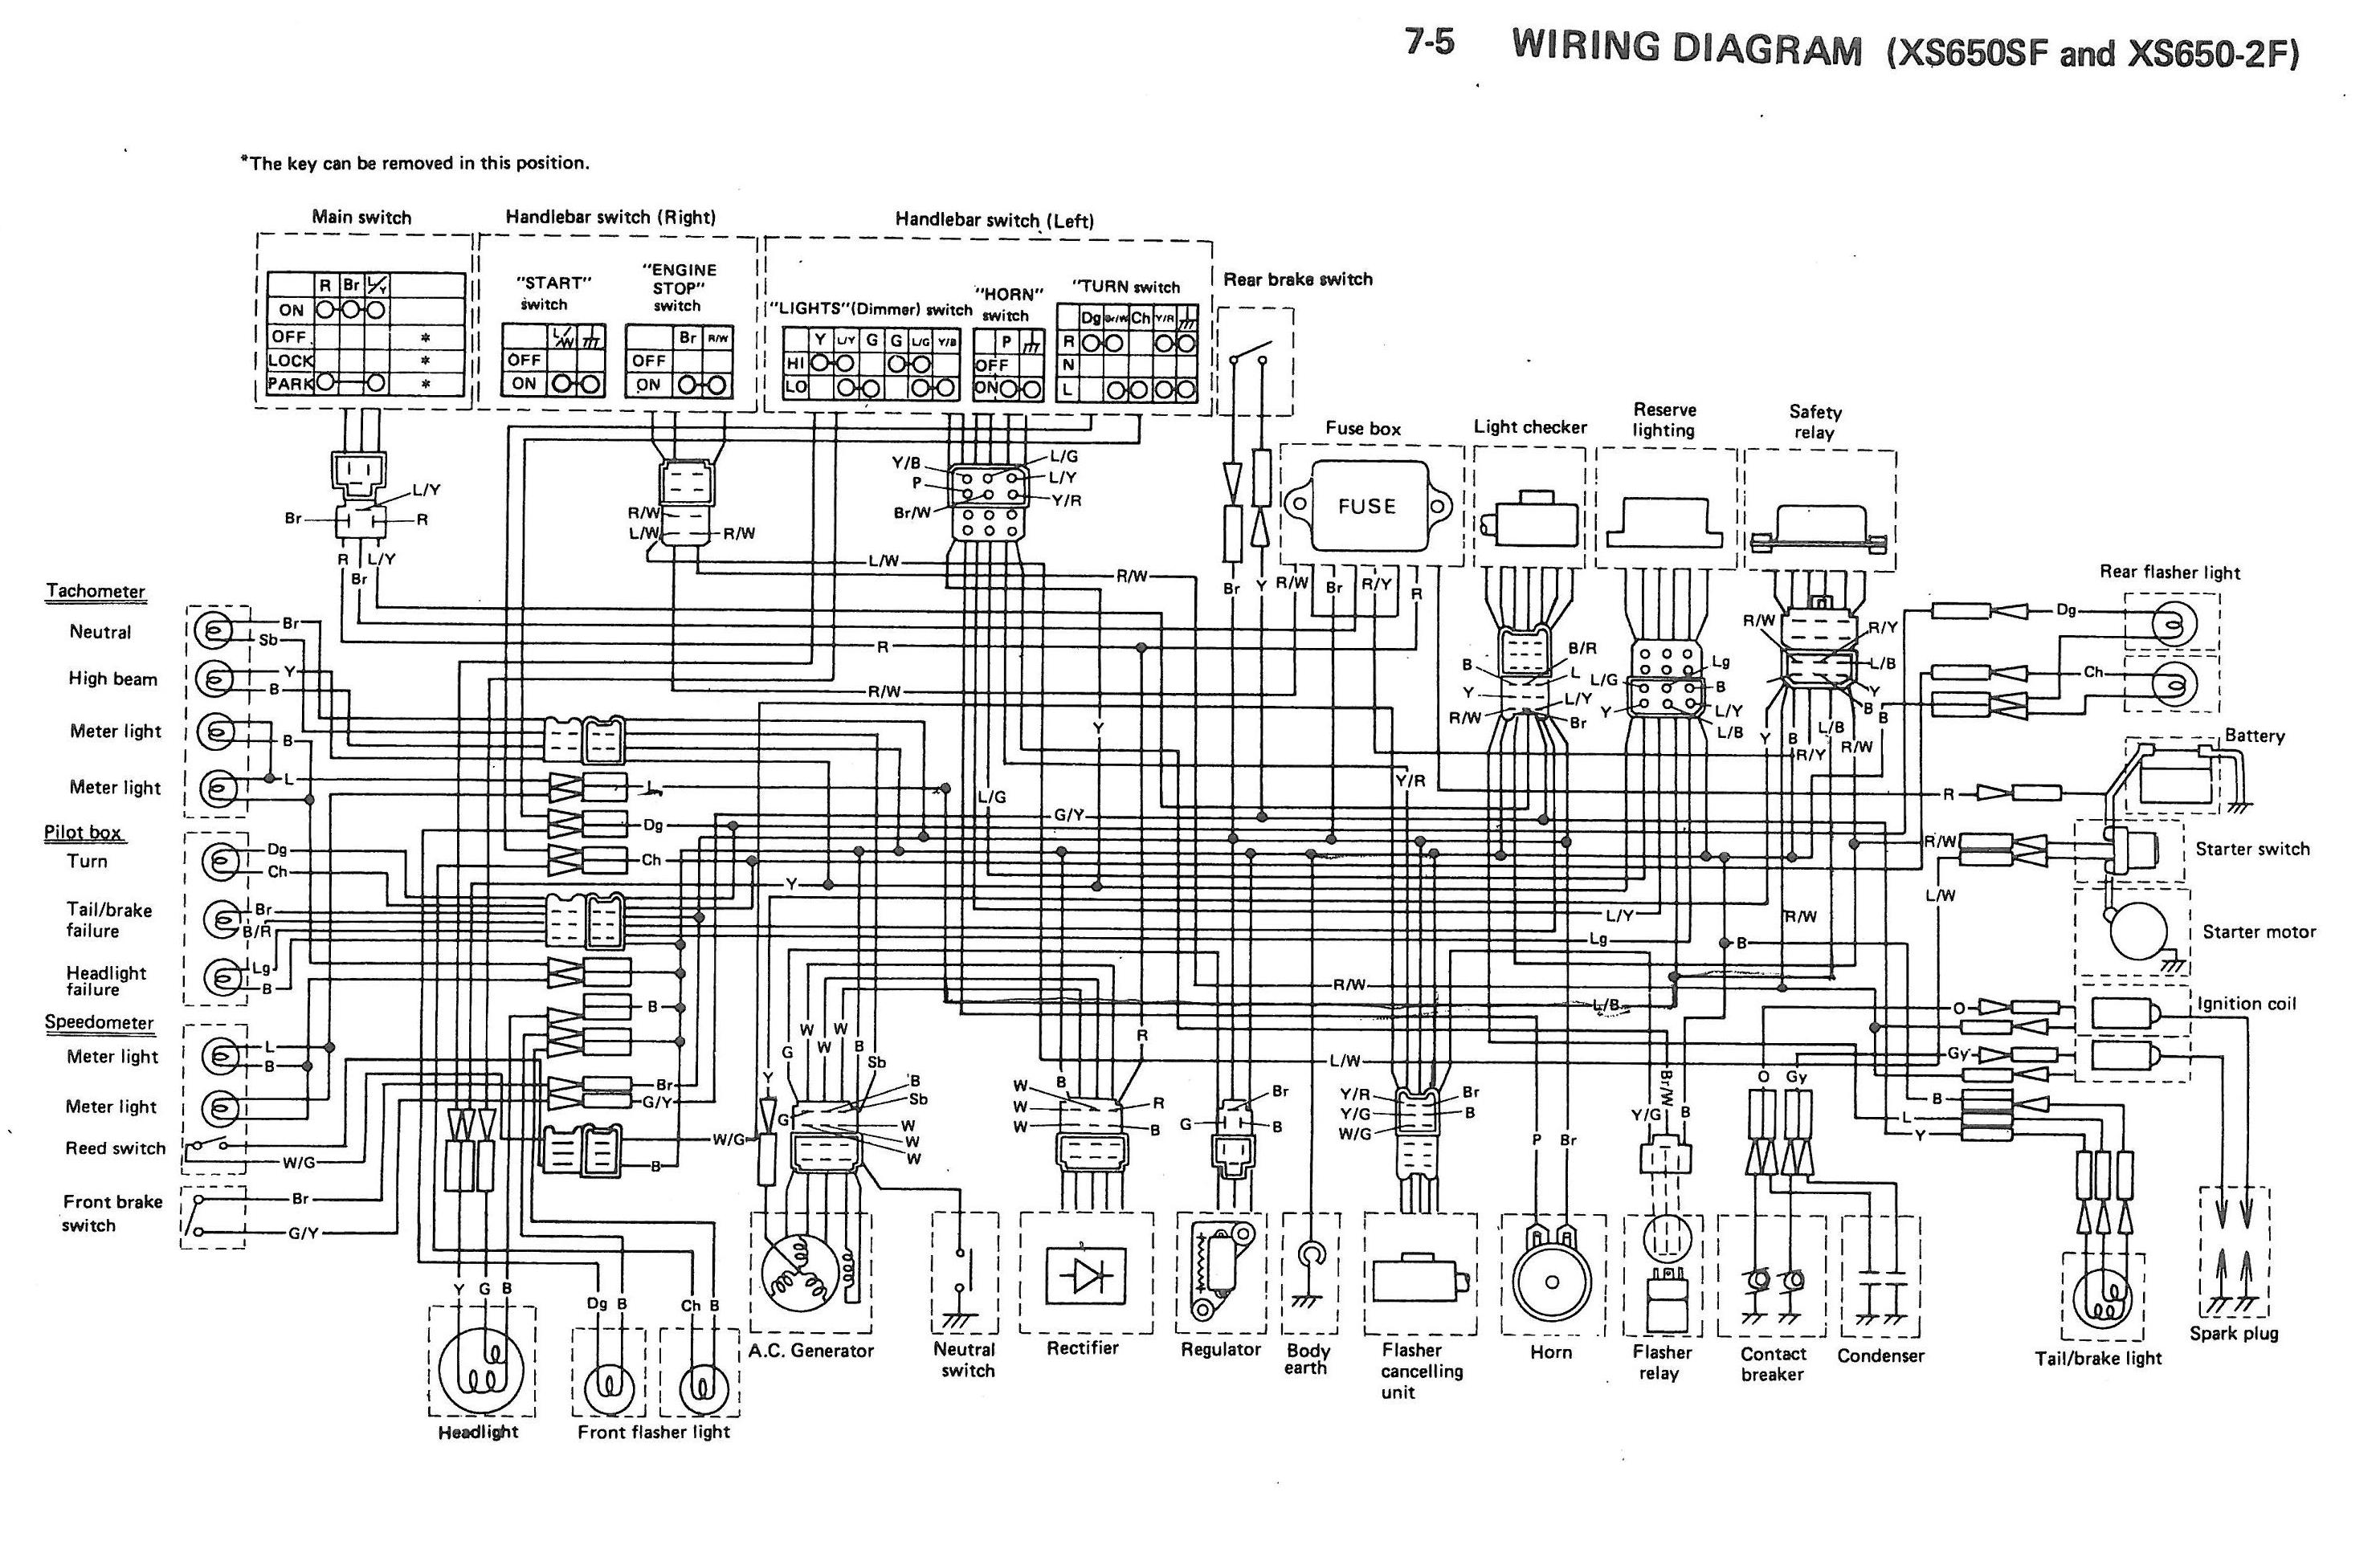 1979 Xs650 Wiring Diagram Reinvent Your 1980 Kz1000 Color 79 Xs650sf 2f Diagrams Thexscafe Rh Thexscafedotcom Wordpress Com 1981 81